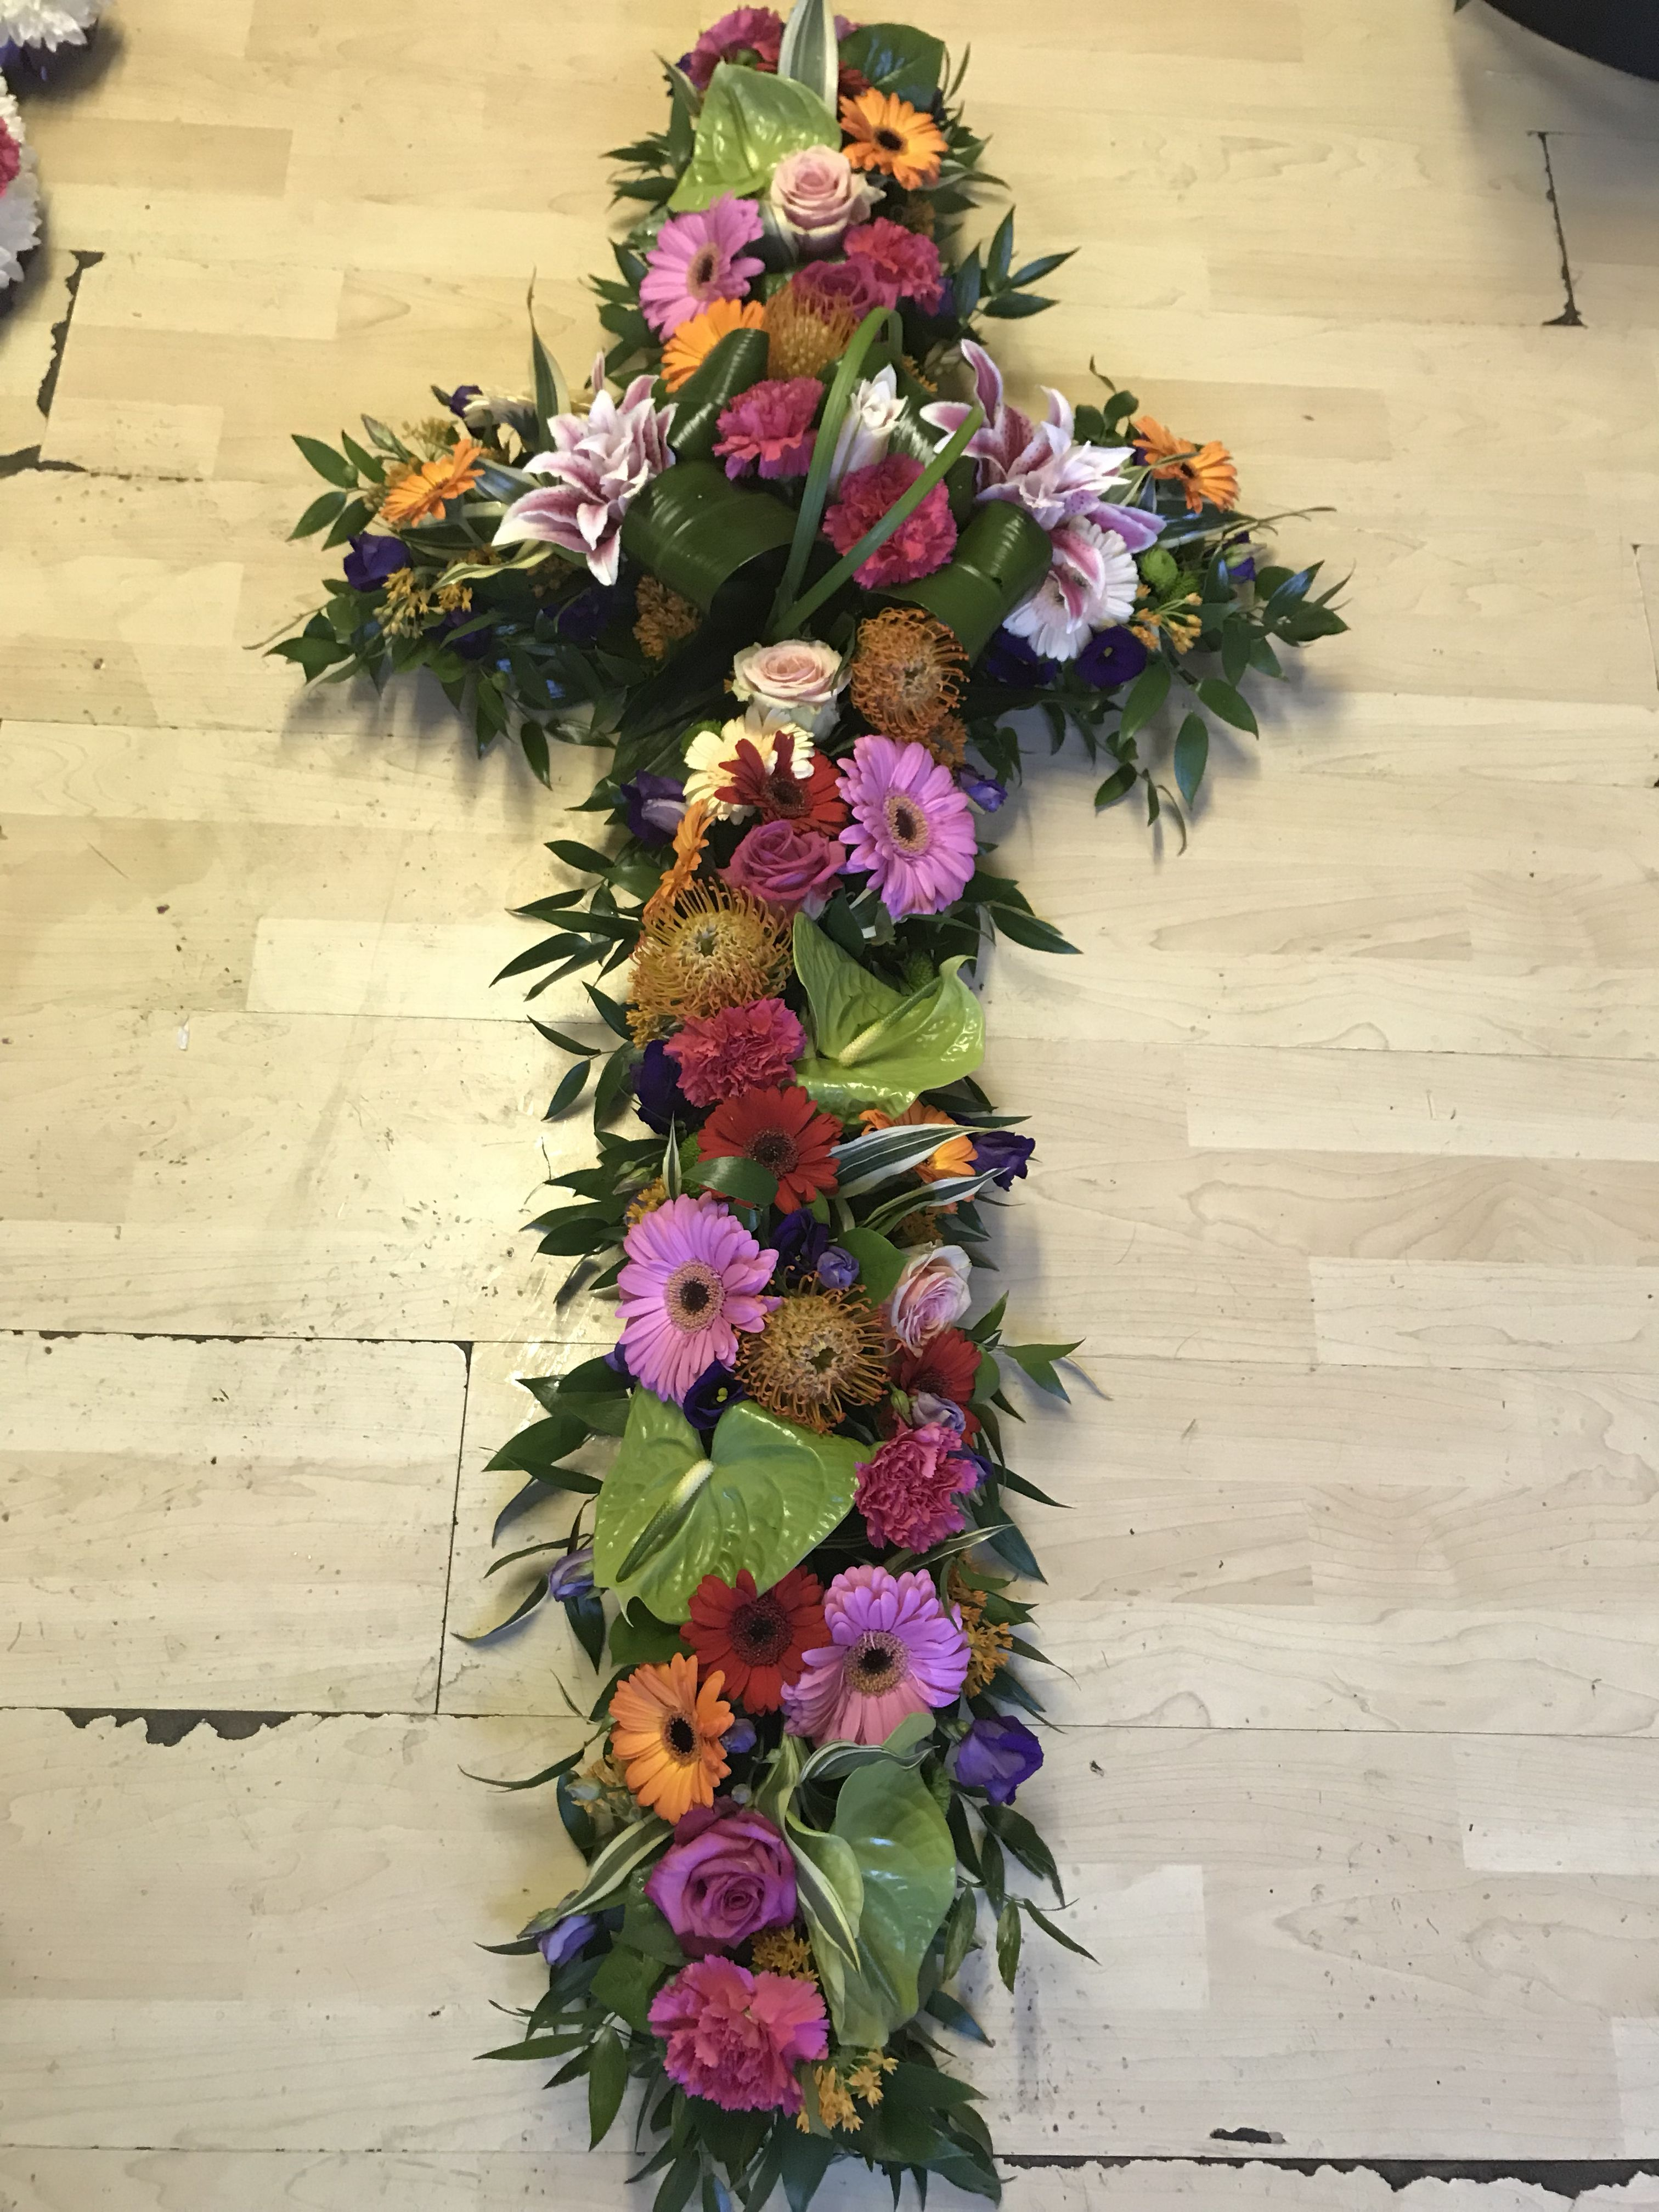 Large Bright Funeral Cross Bloomin Chic Funeral Flowers